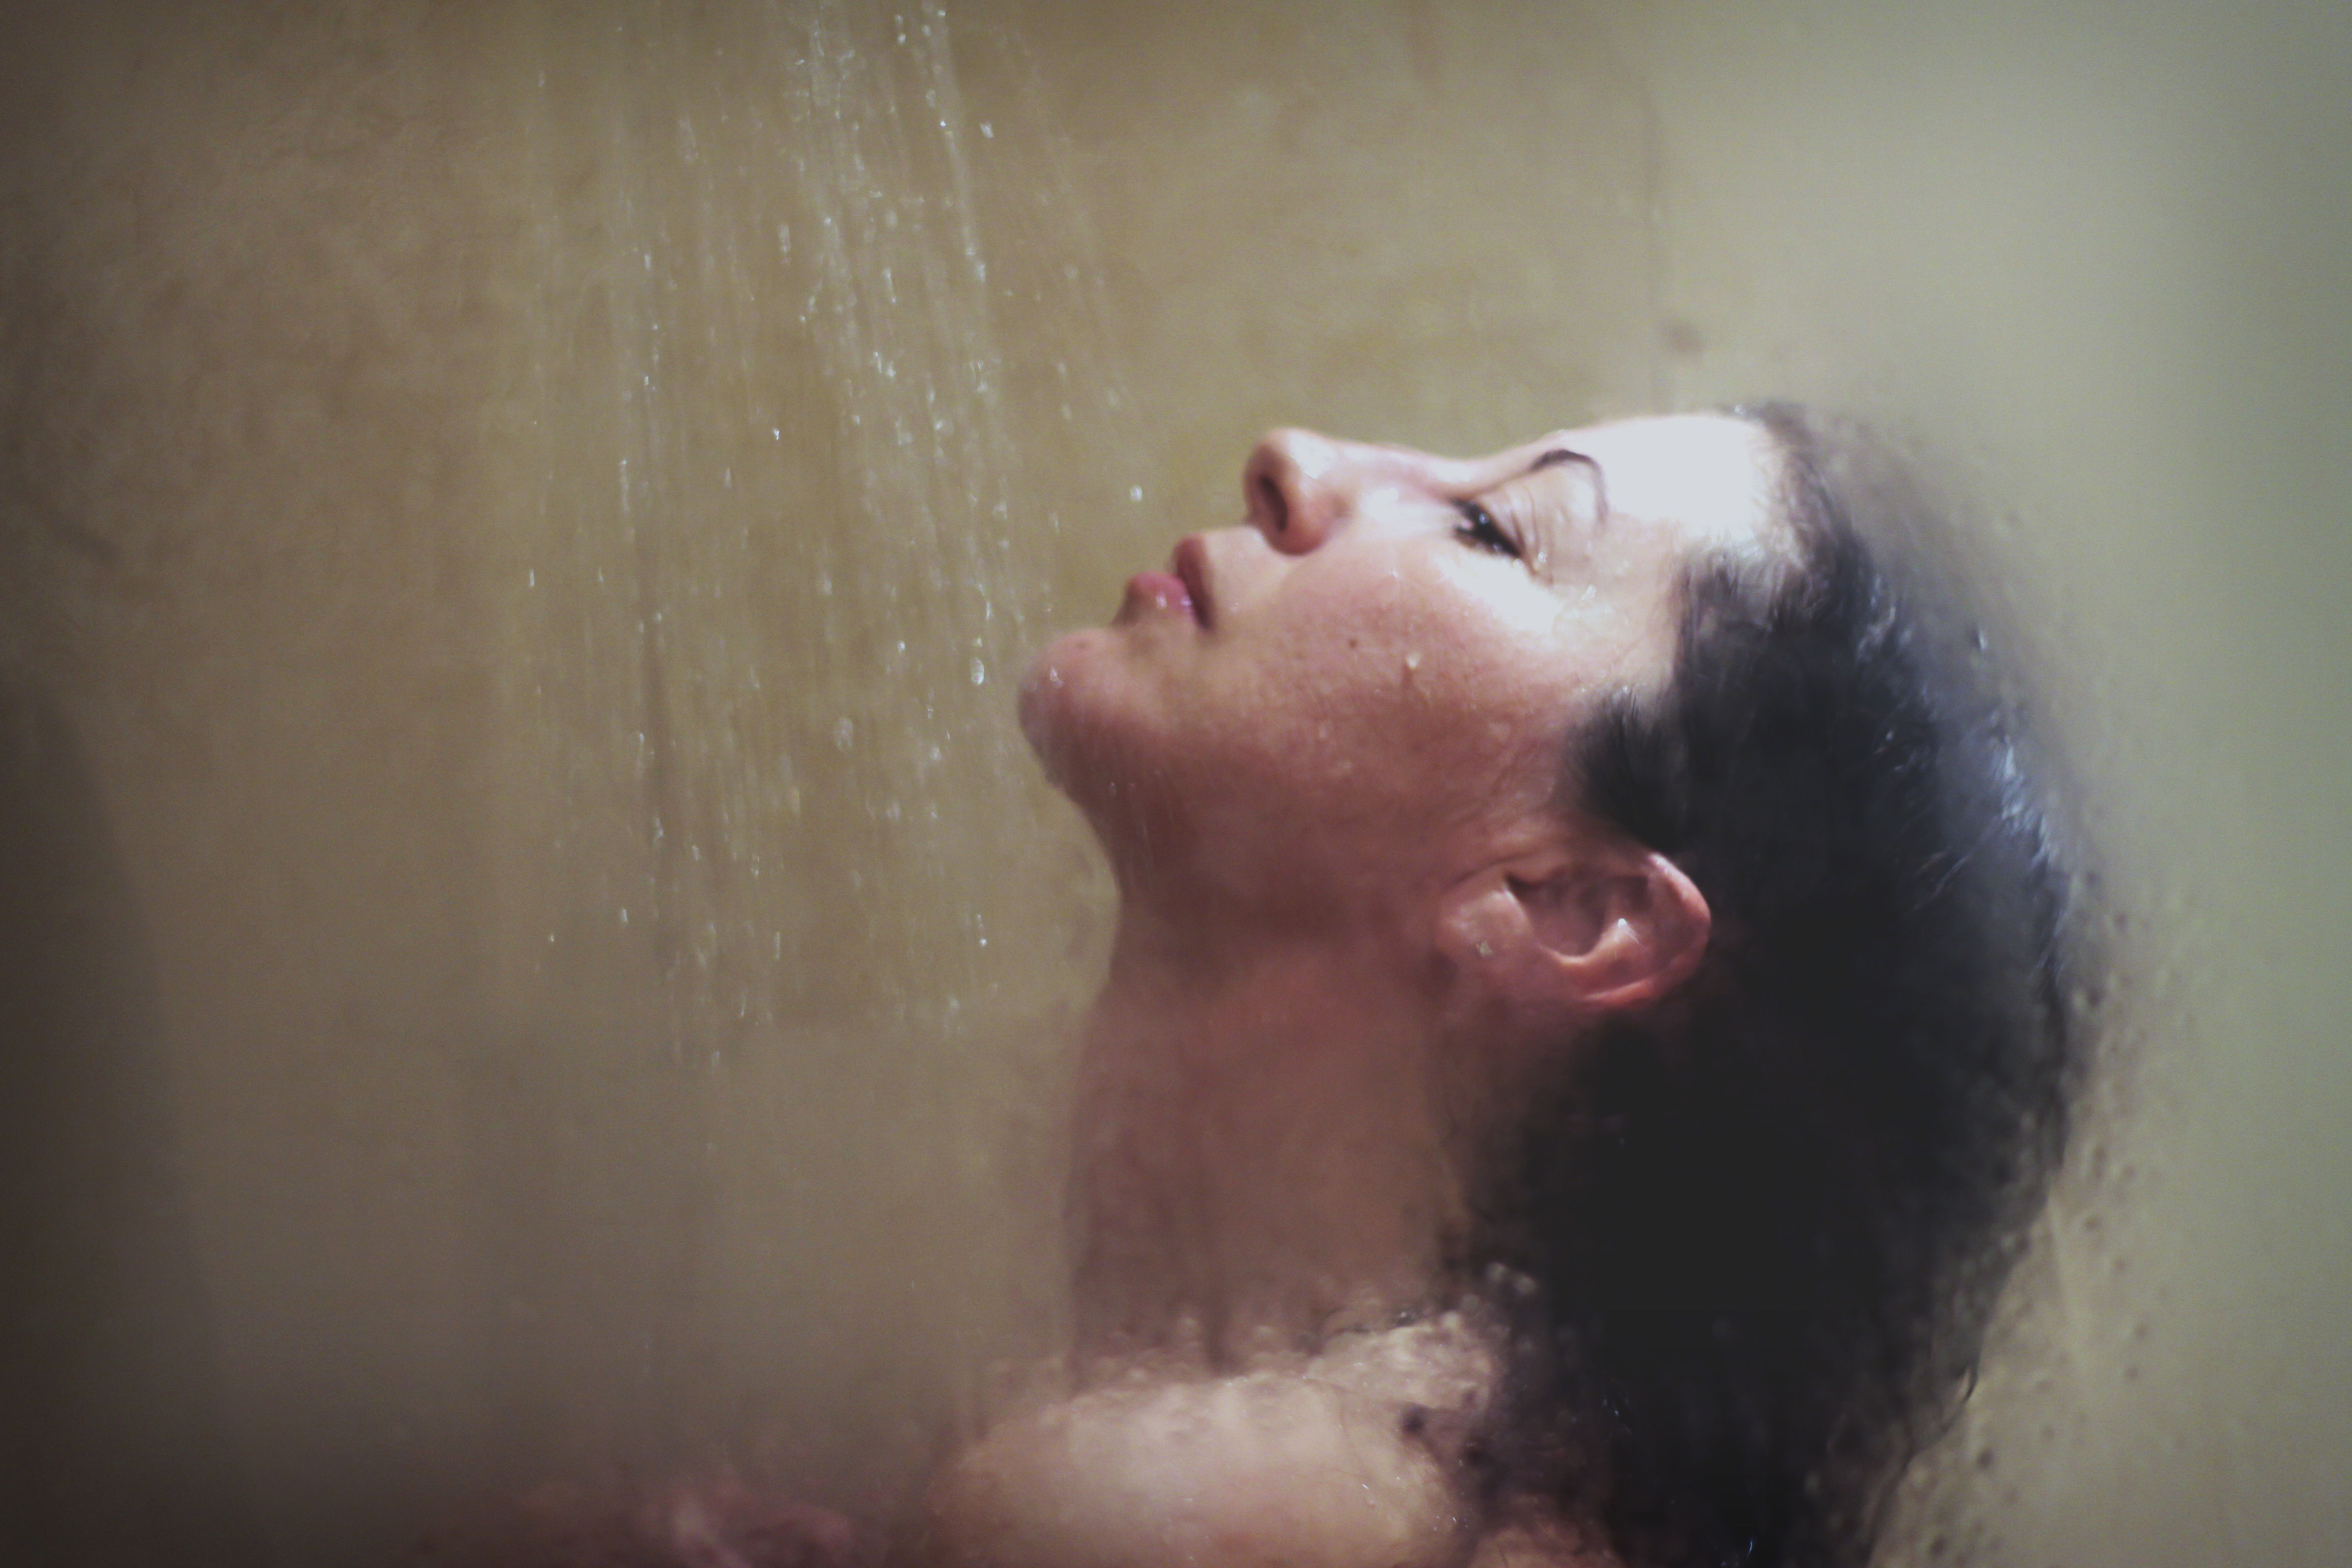 A woman from the neck up in the shower.